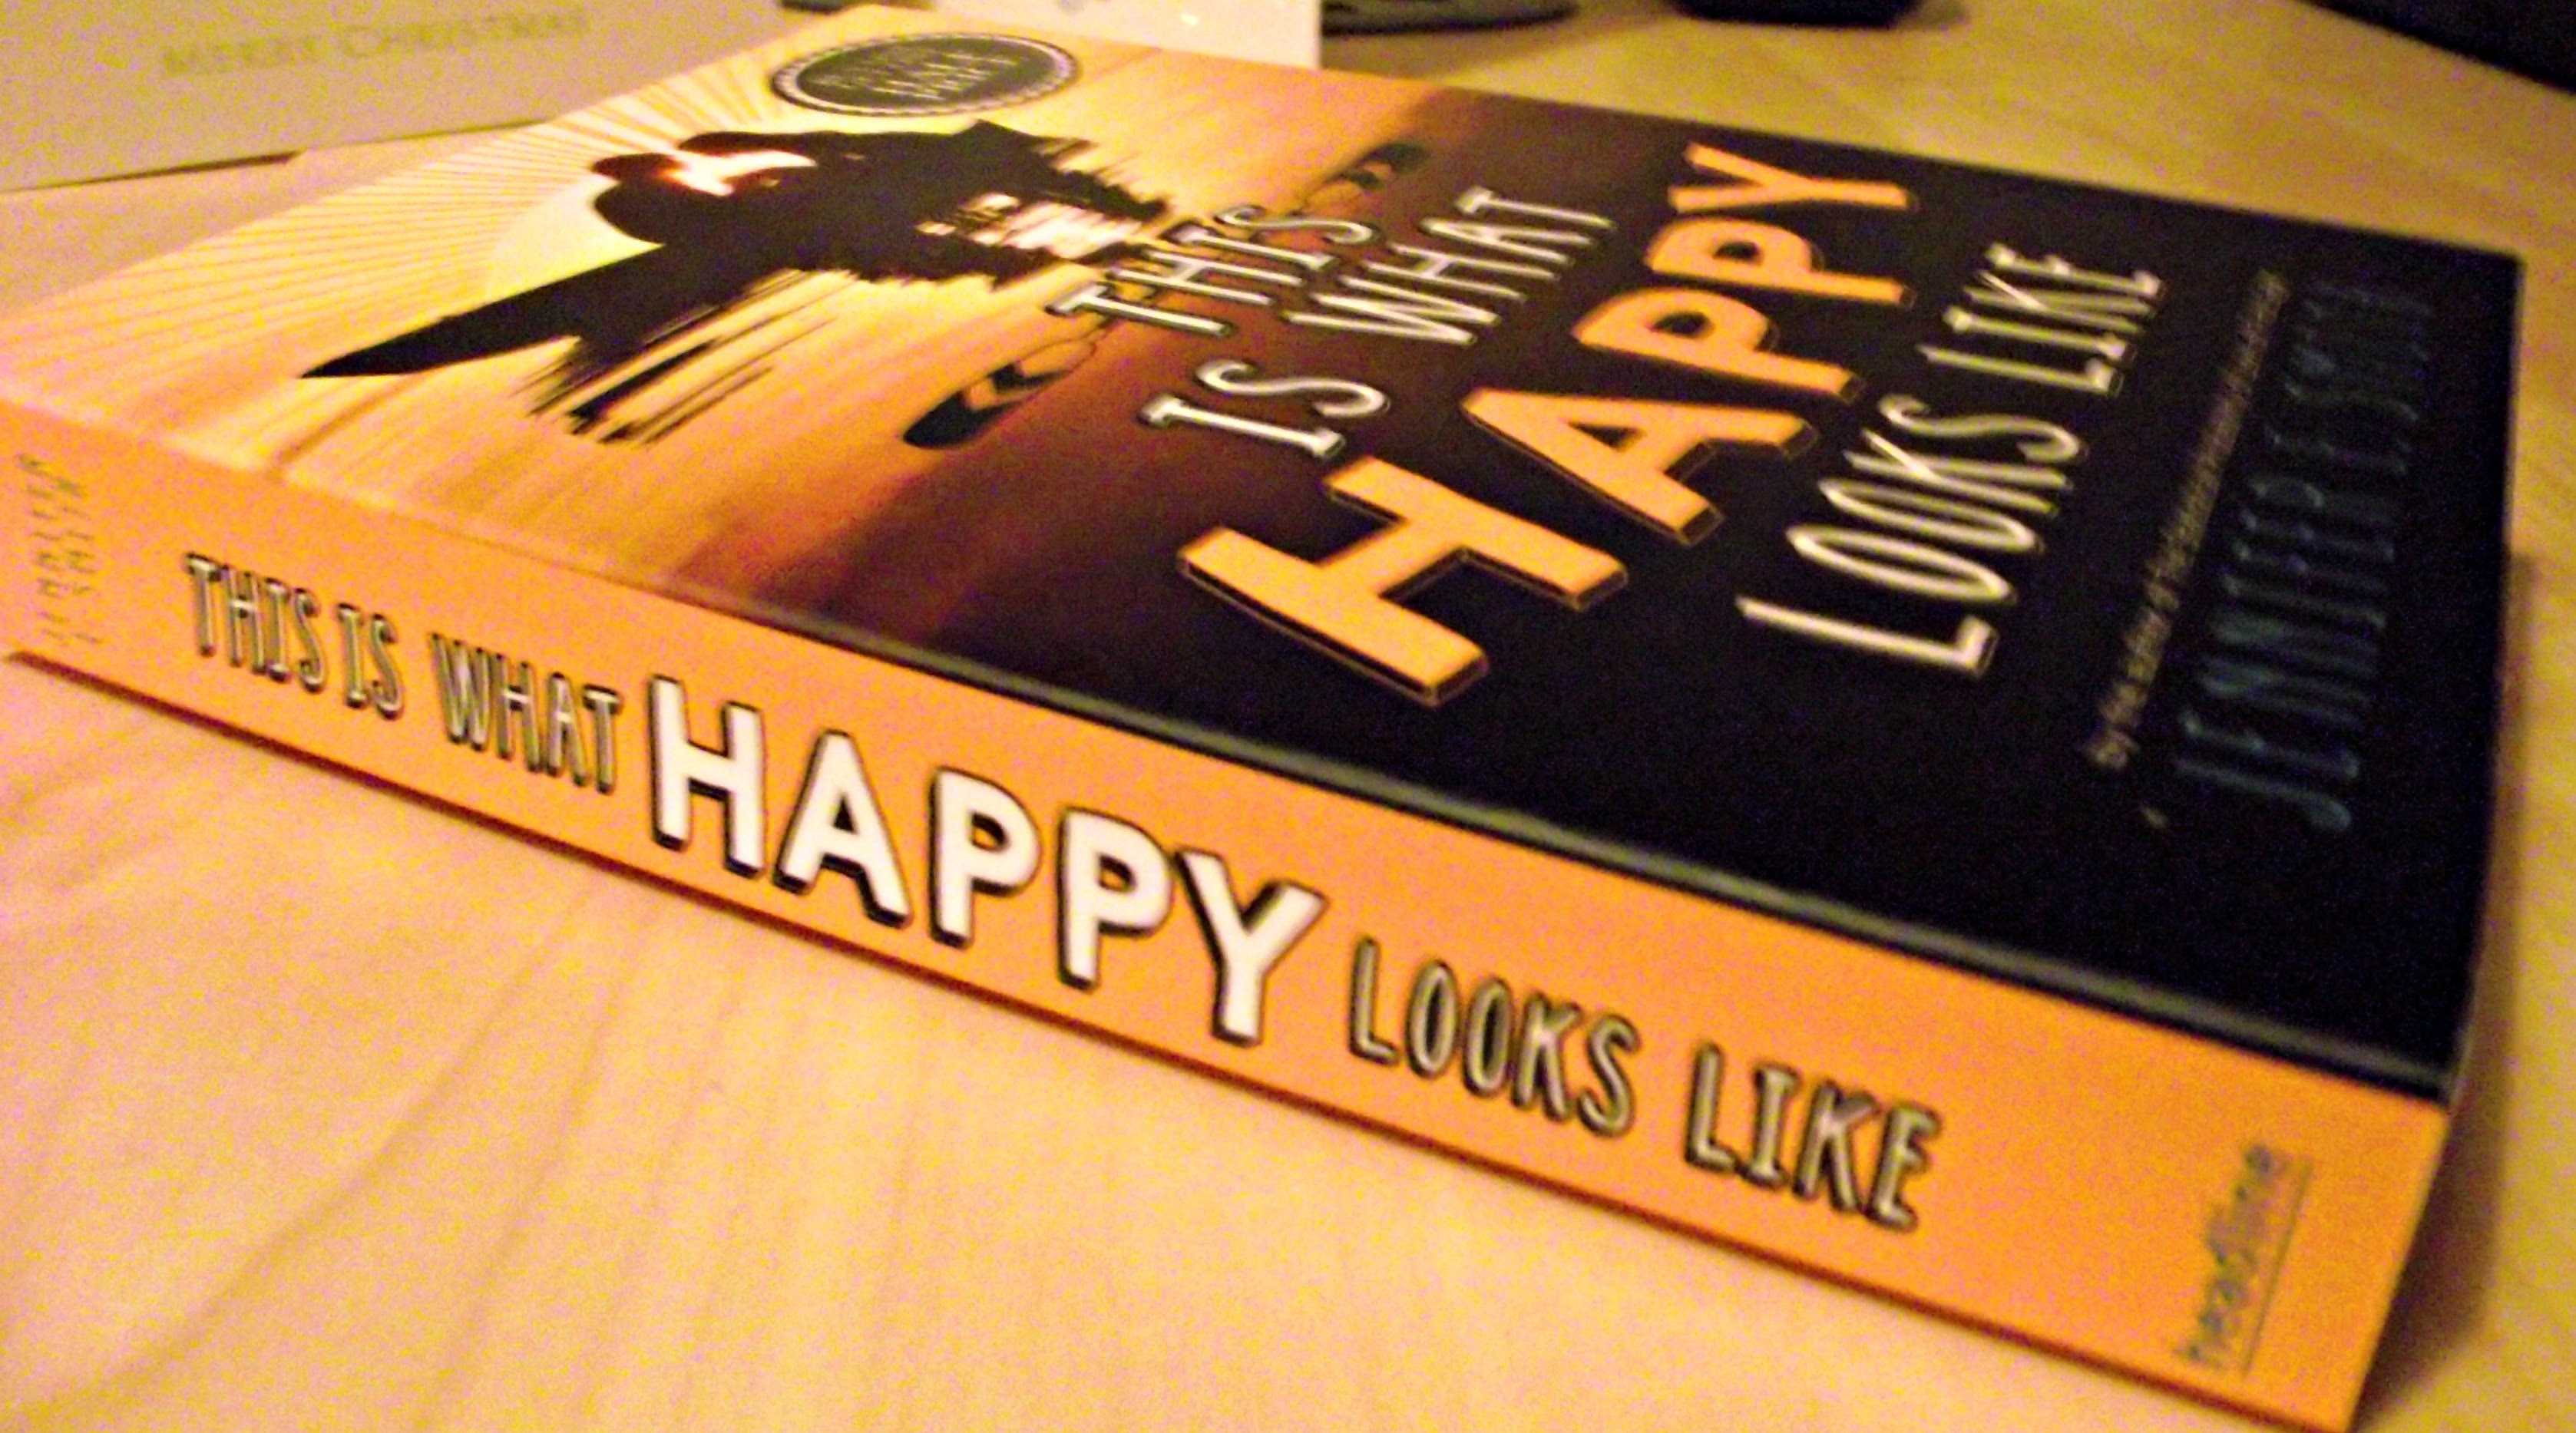 This Is What Happy Looks Like cover